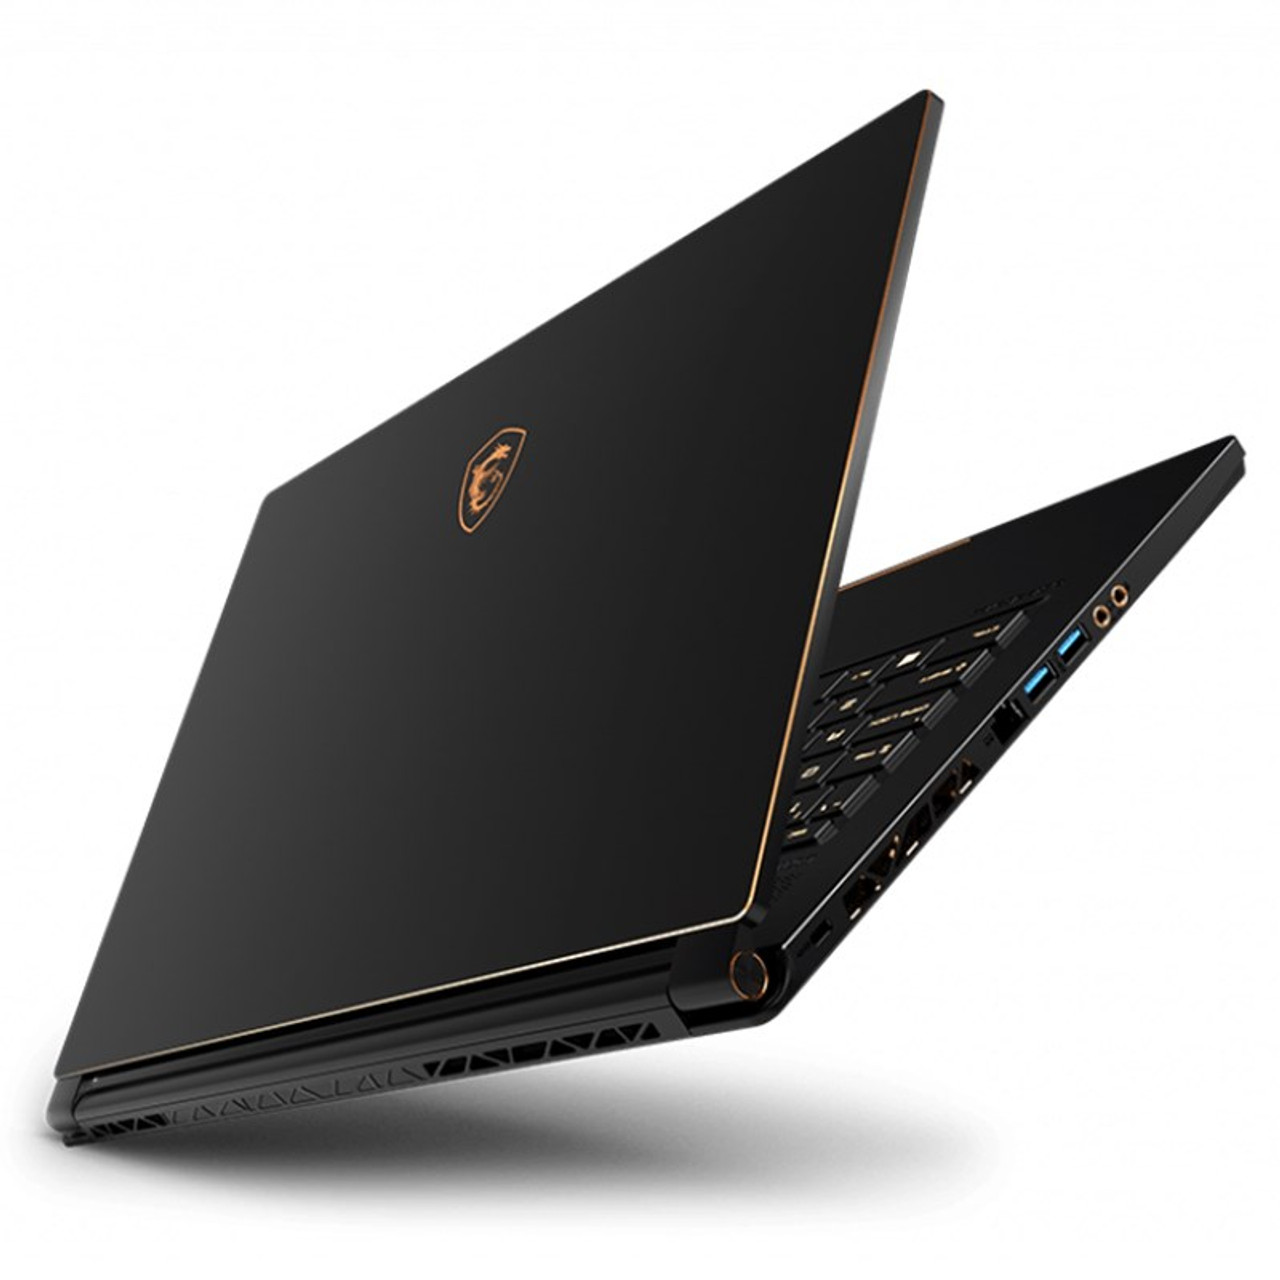 Image for MSI GS65 Stealth 9SG 15.6in 240Hz Gaming Laptop i7-9750H 32GB 1TB RTX2080 W10H CX Computer Superstore